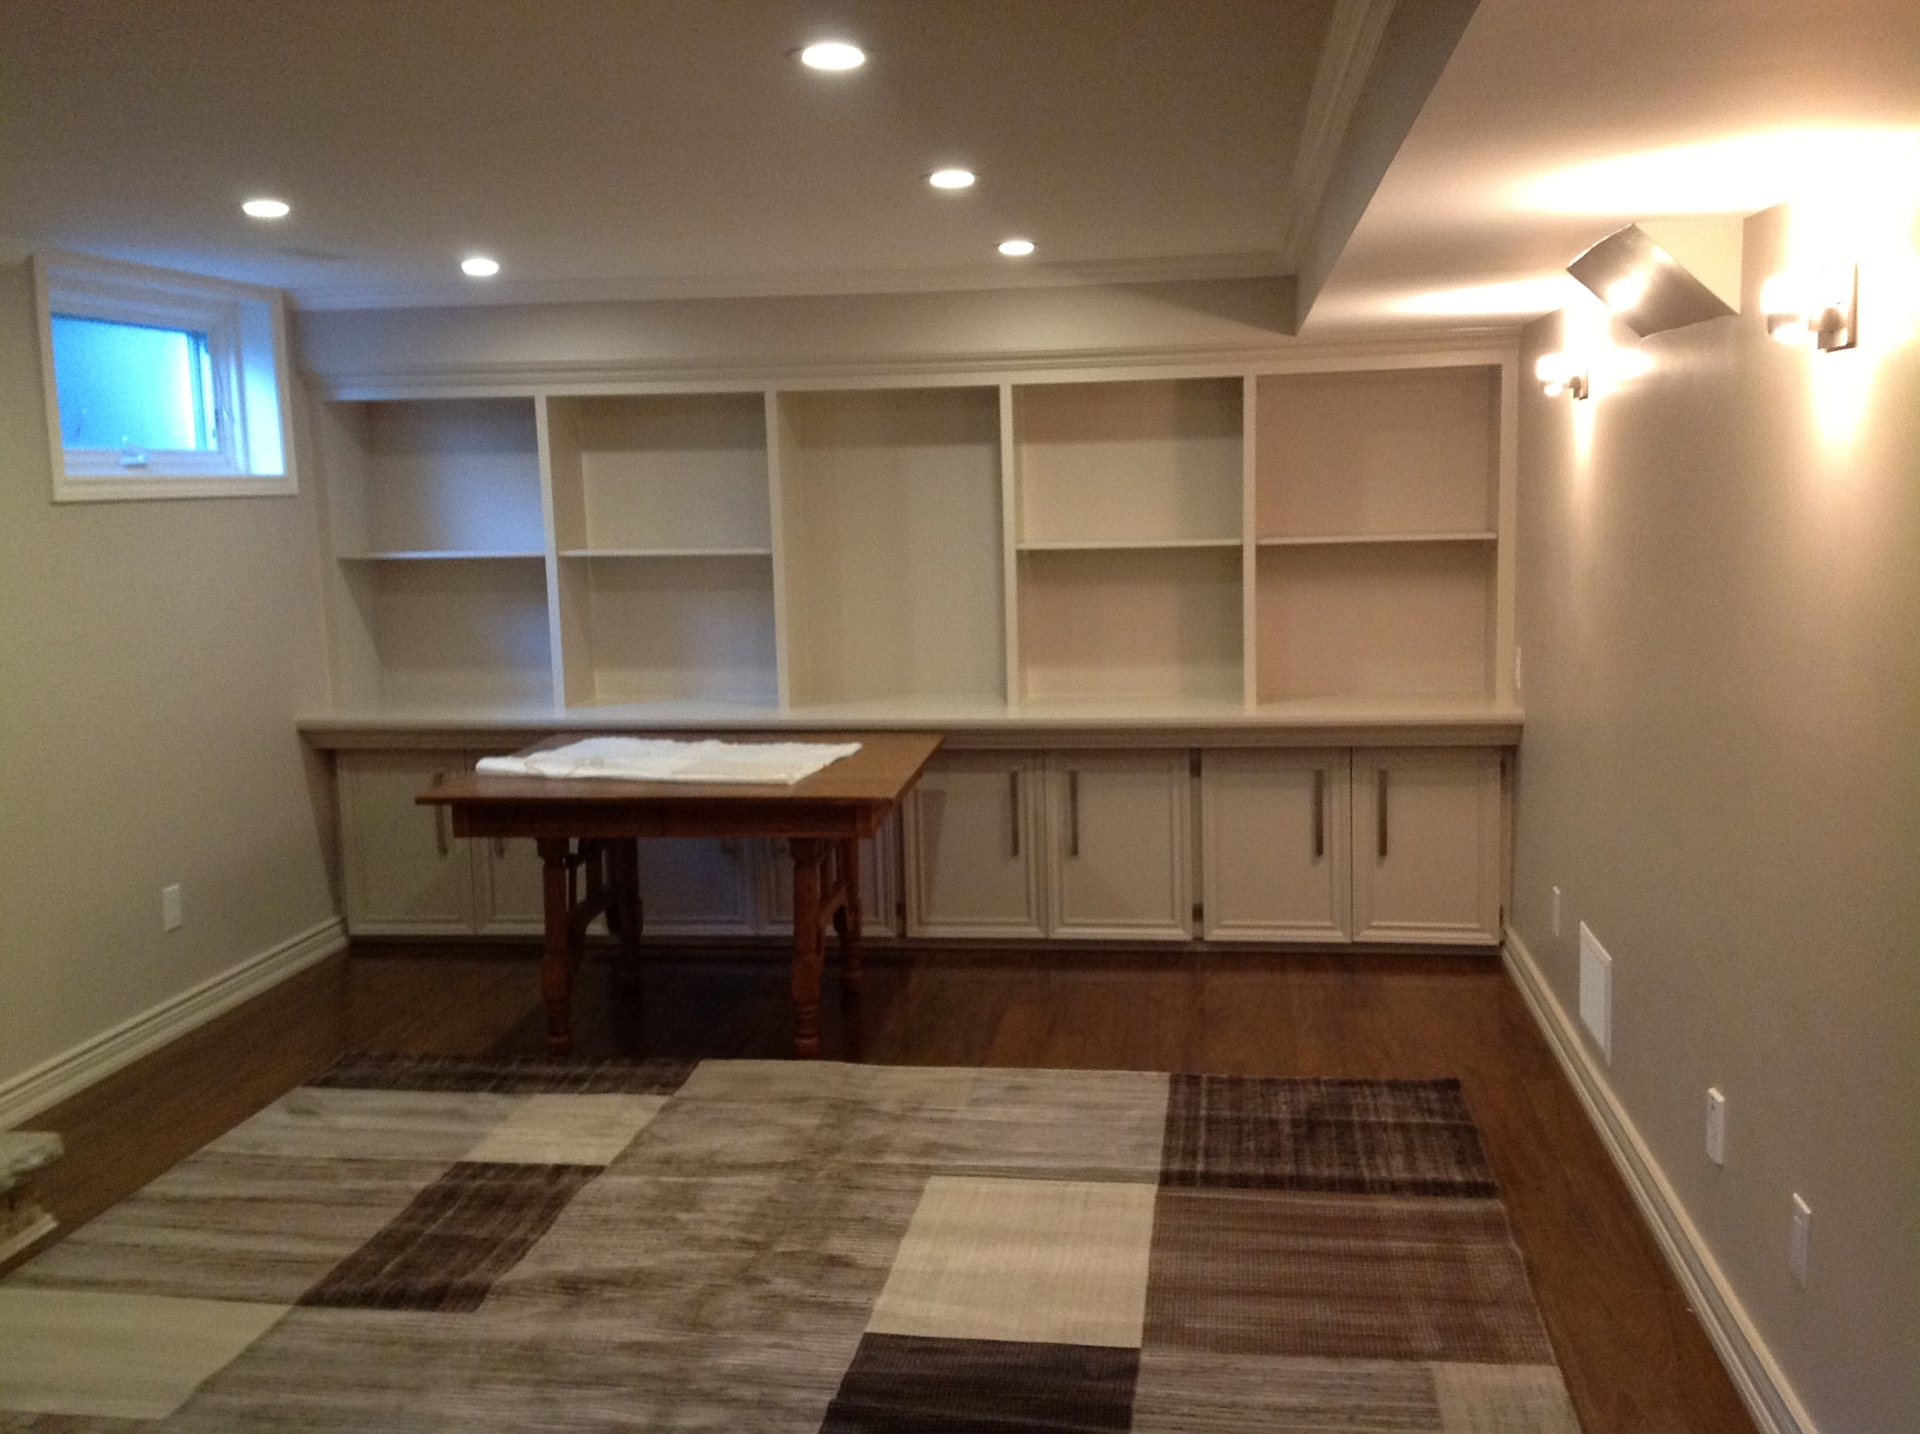 Built in cabinets with shelves and drawers